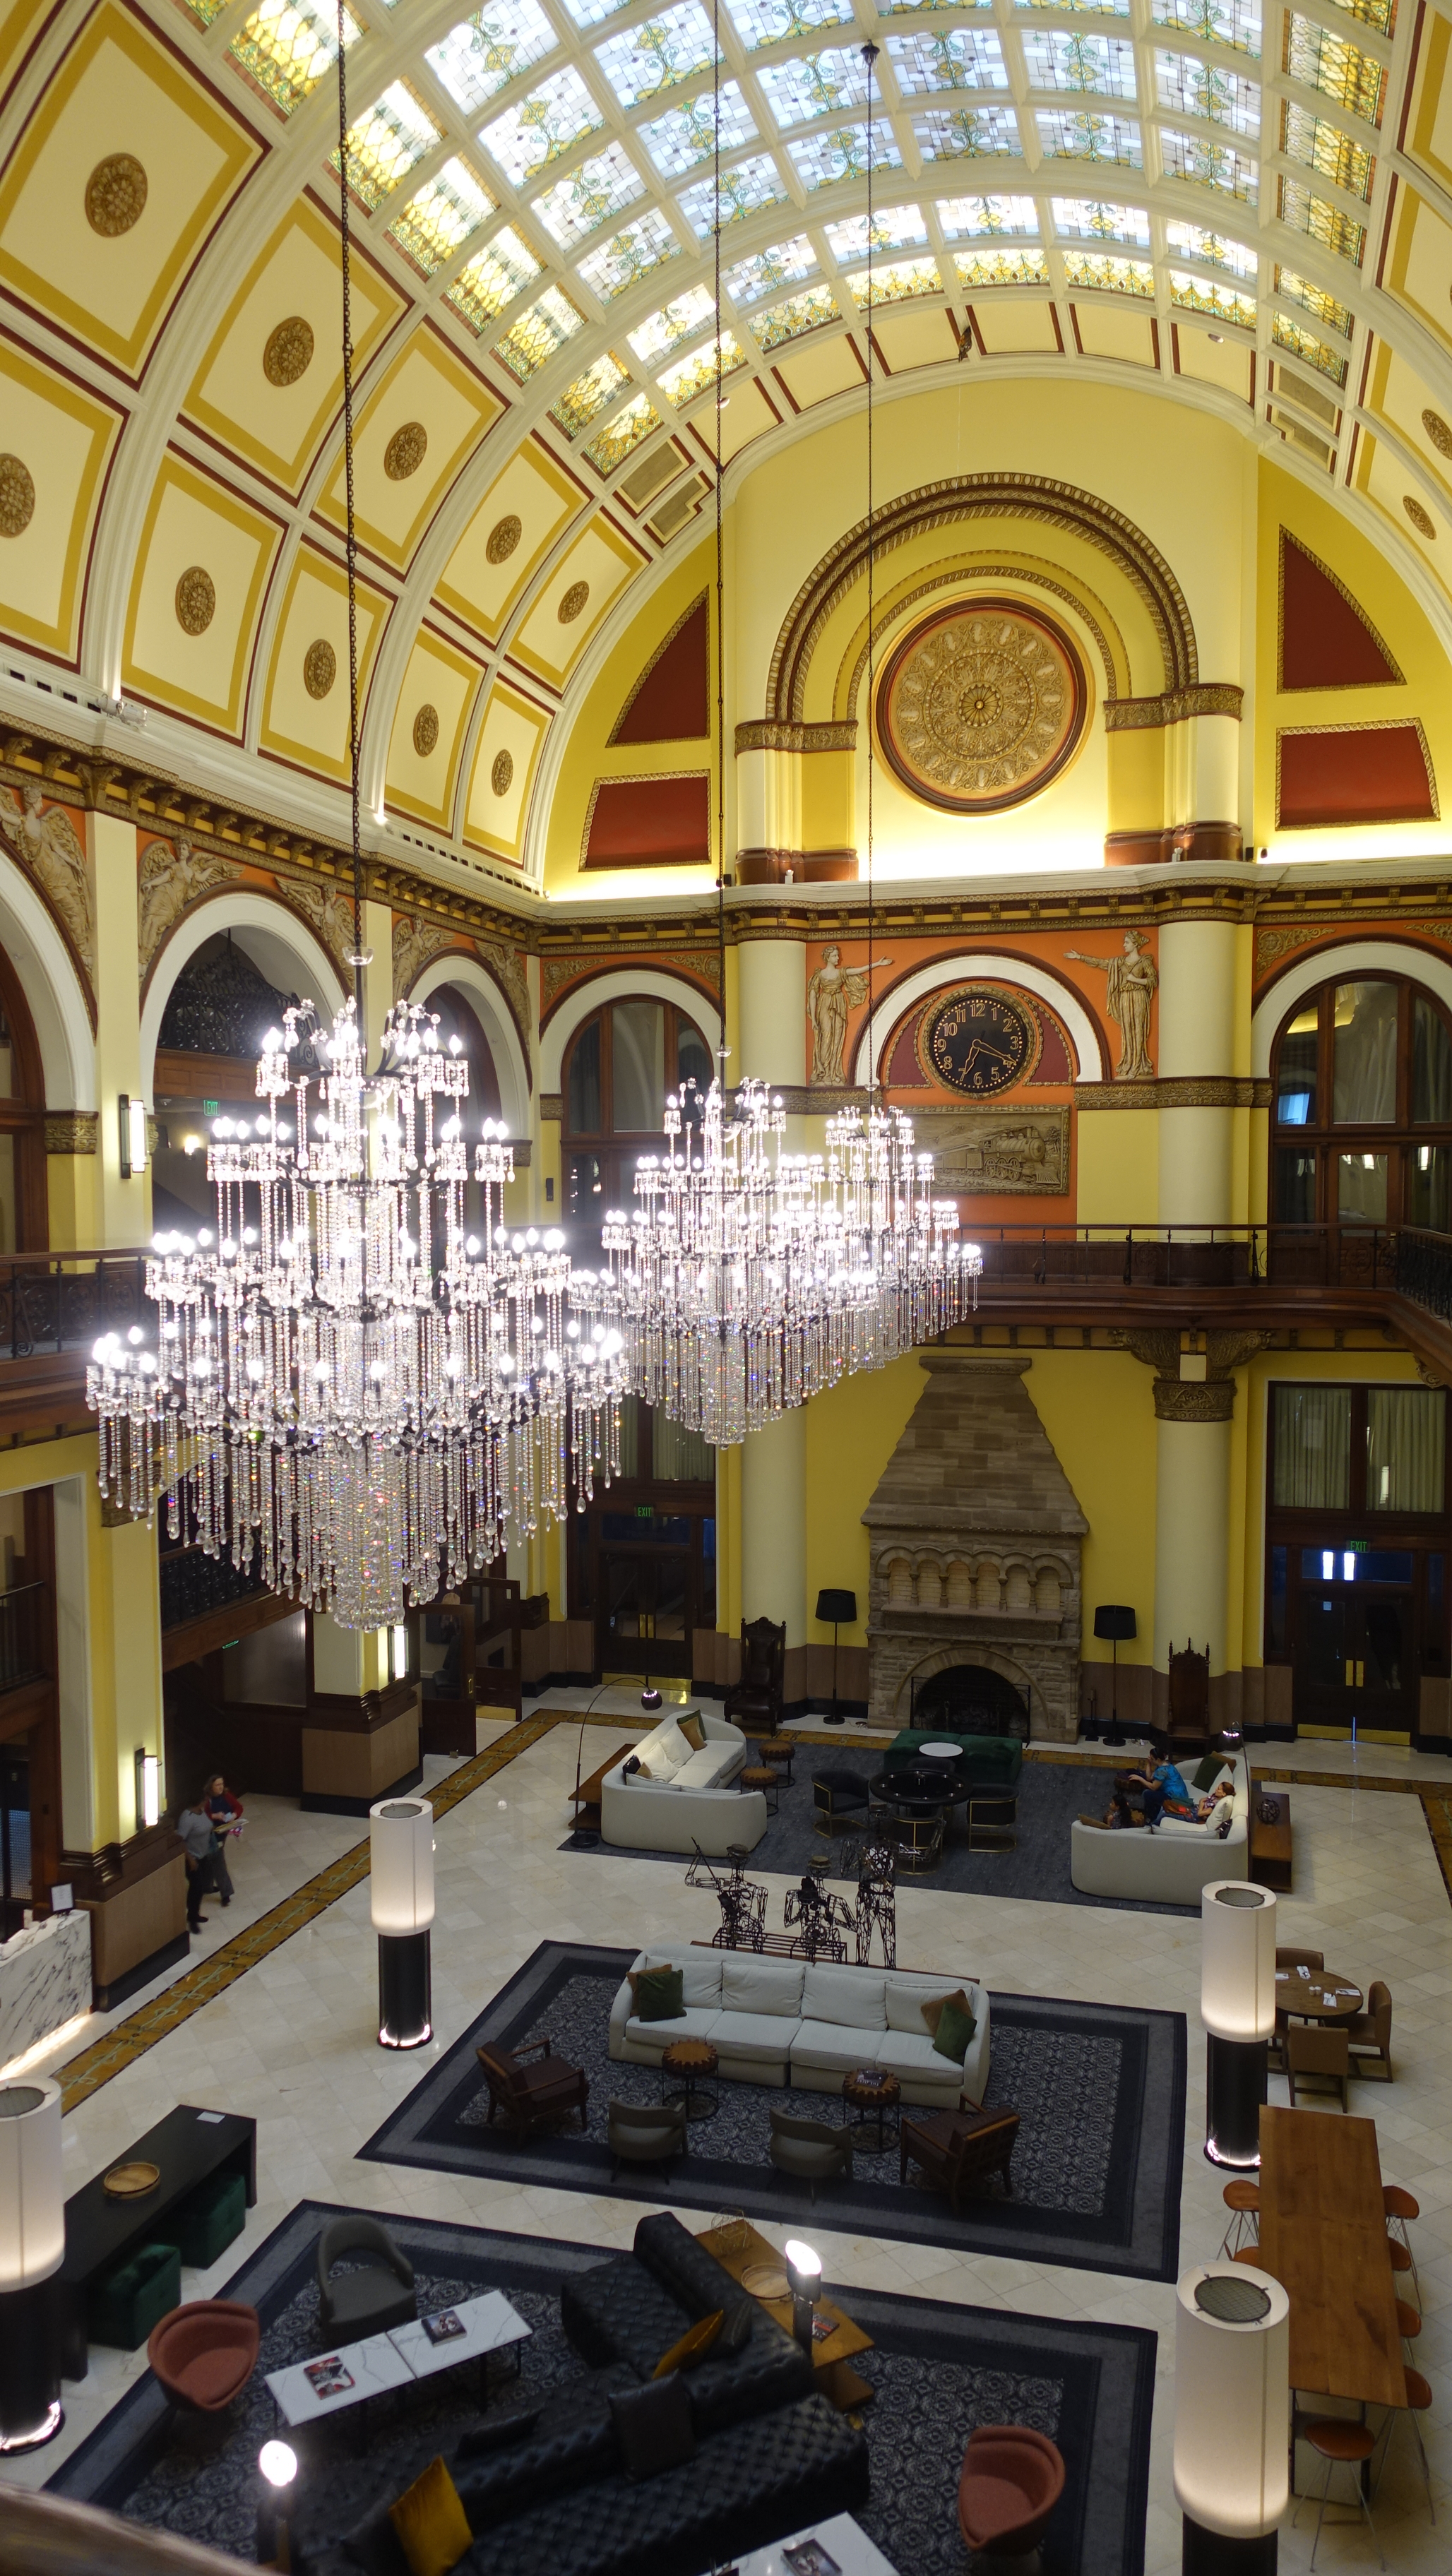 The lobby of Nashville's Union Station Hotel (yes, it is a converted historical railway station) is impressive.